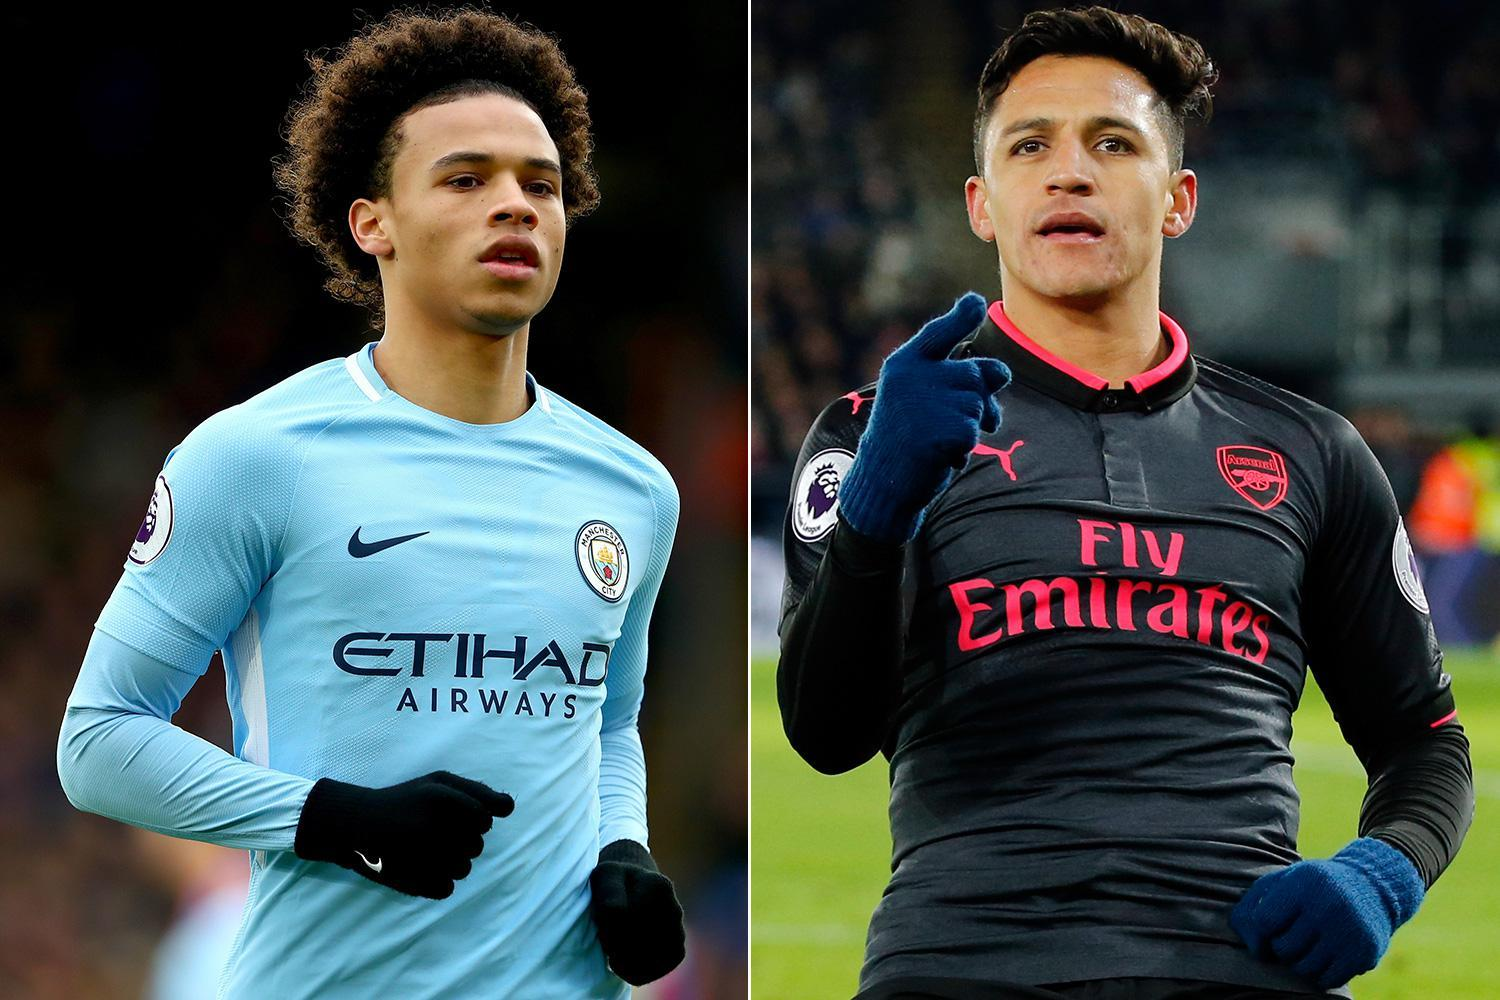 Manchester City star Leroy Sane not worried about his place in Pep Guardiola's starting XI… even if they sign Alexis Sanchez